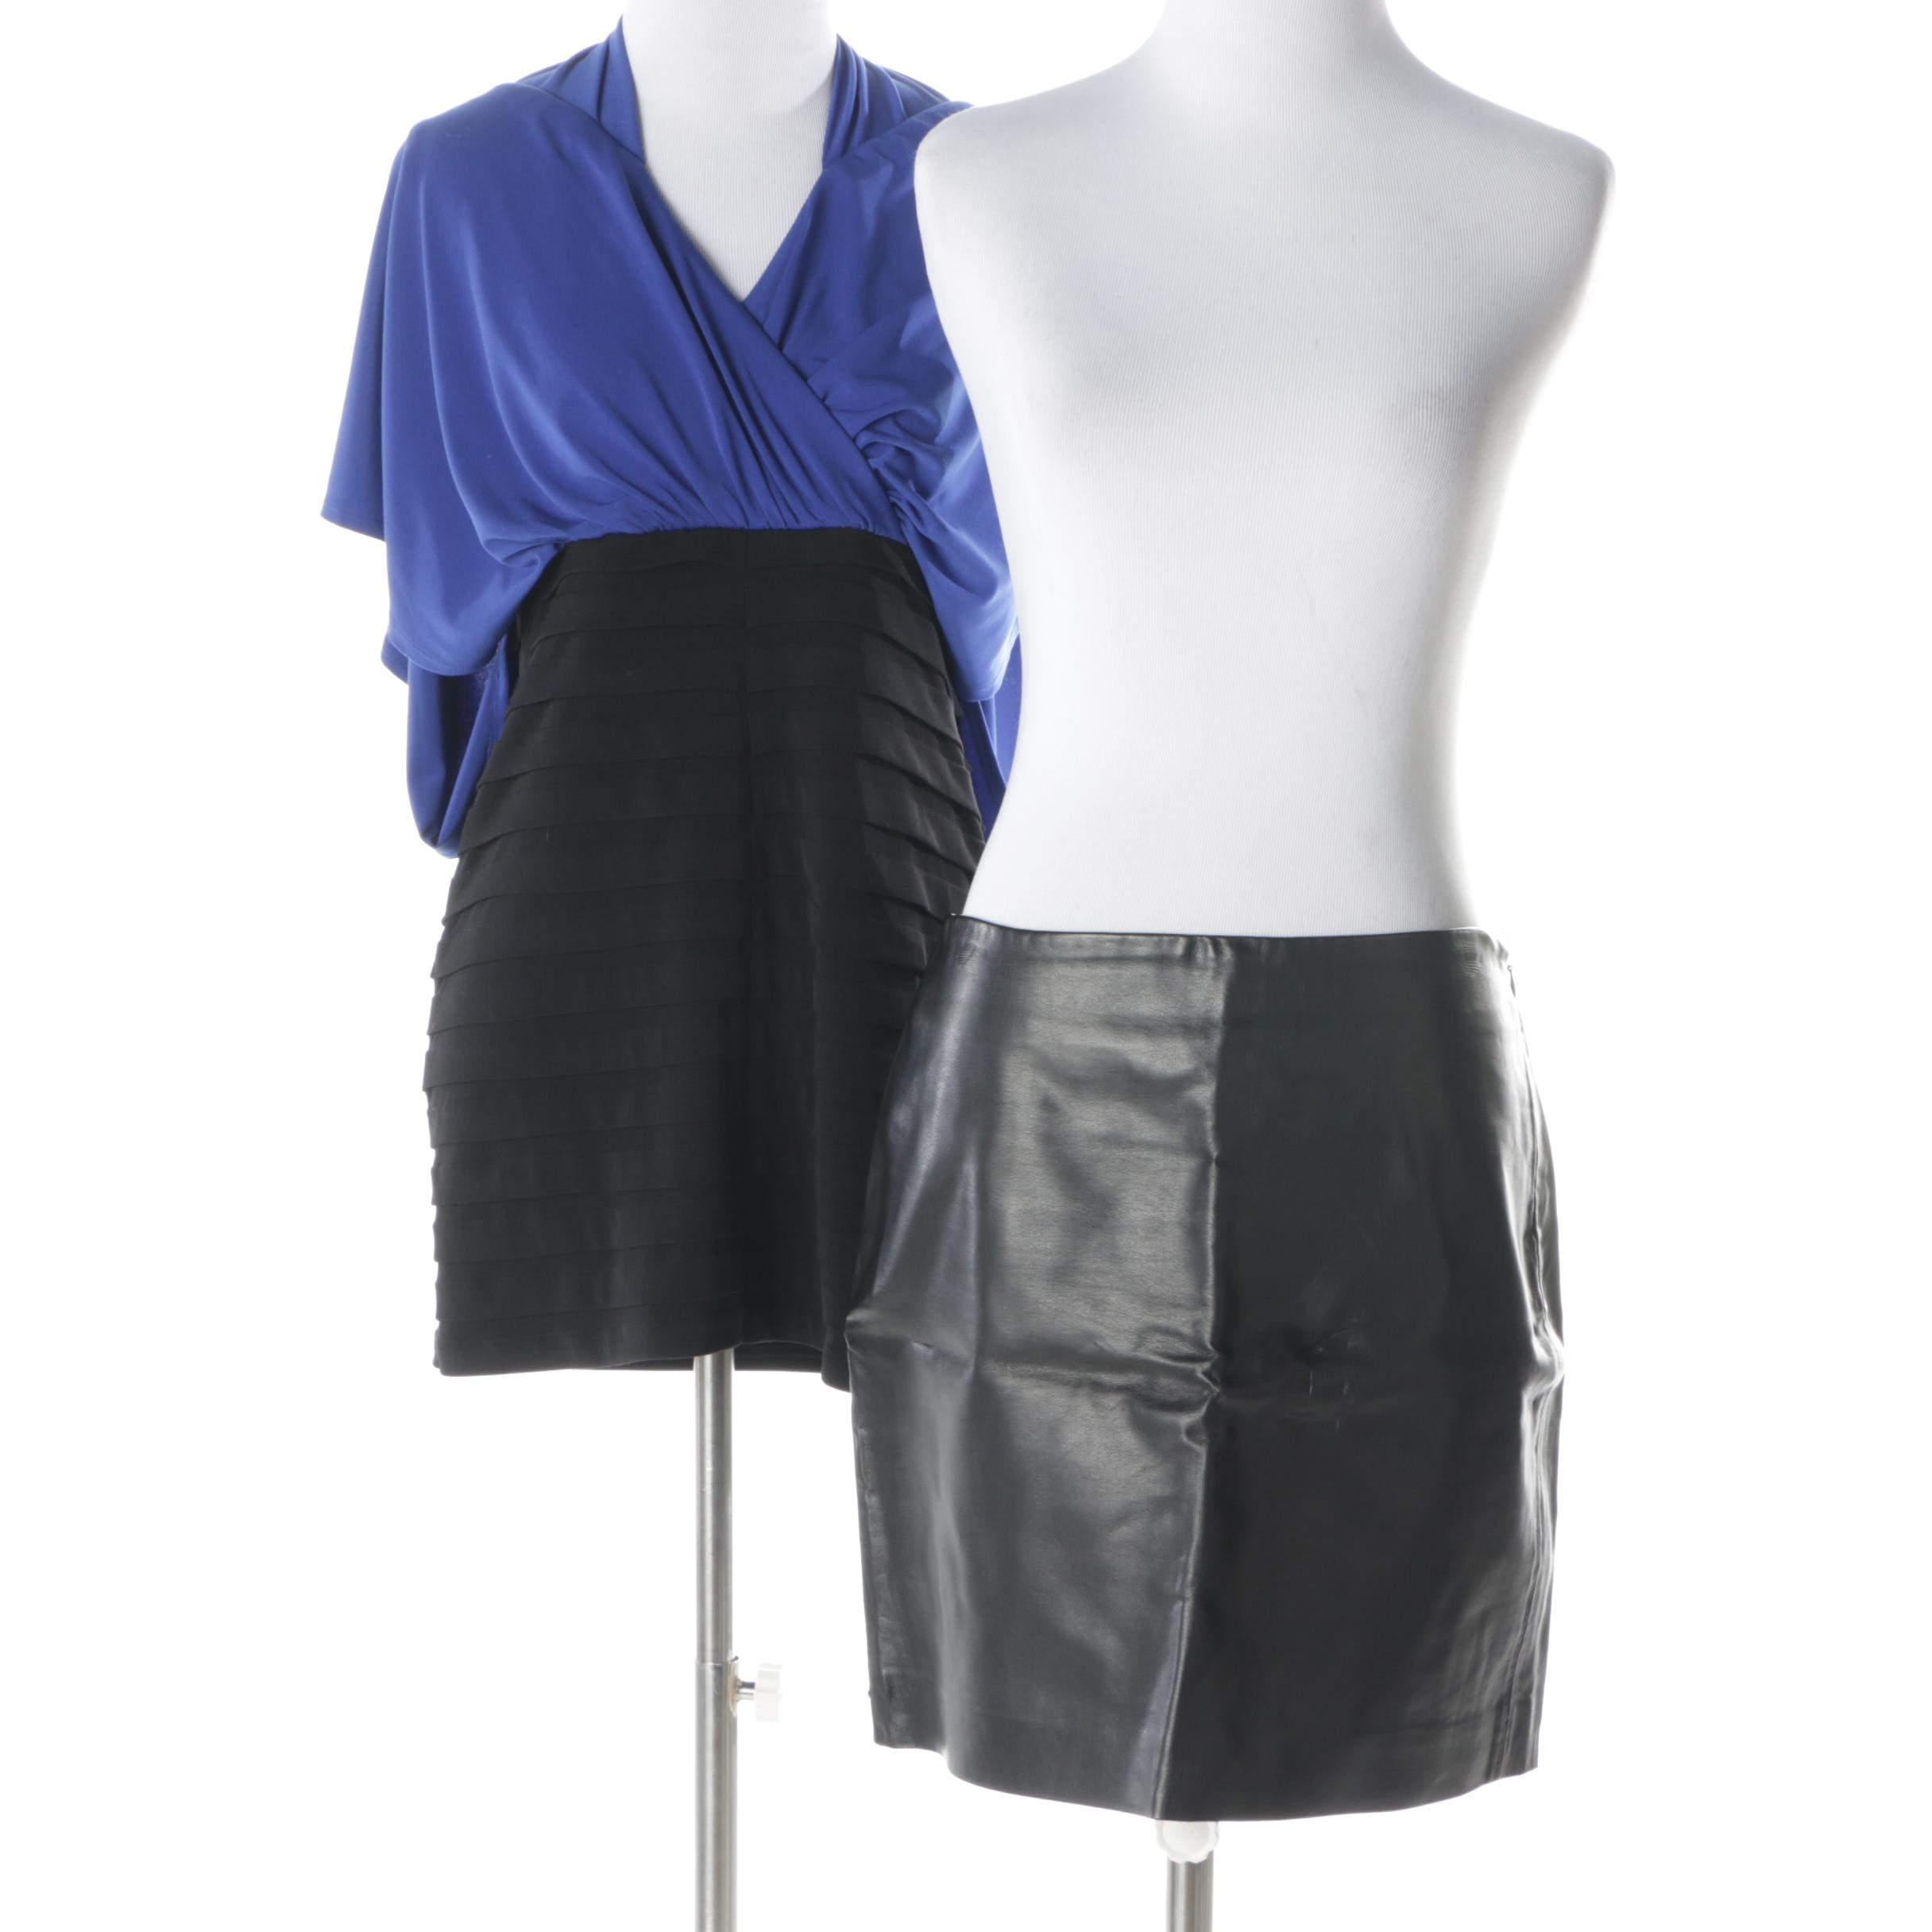 Women's Clothing Including Express Design Studio